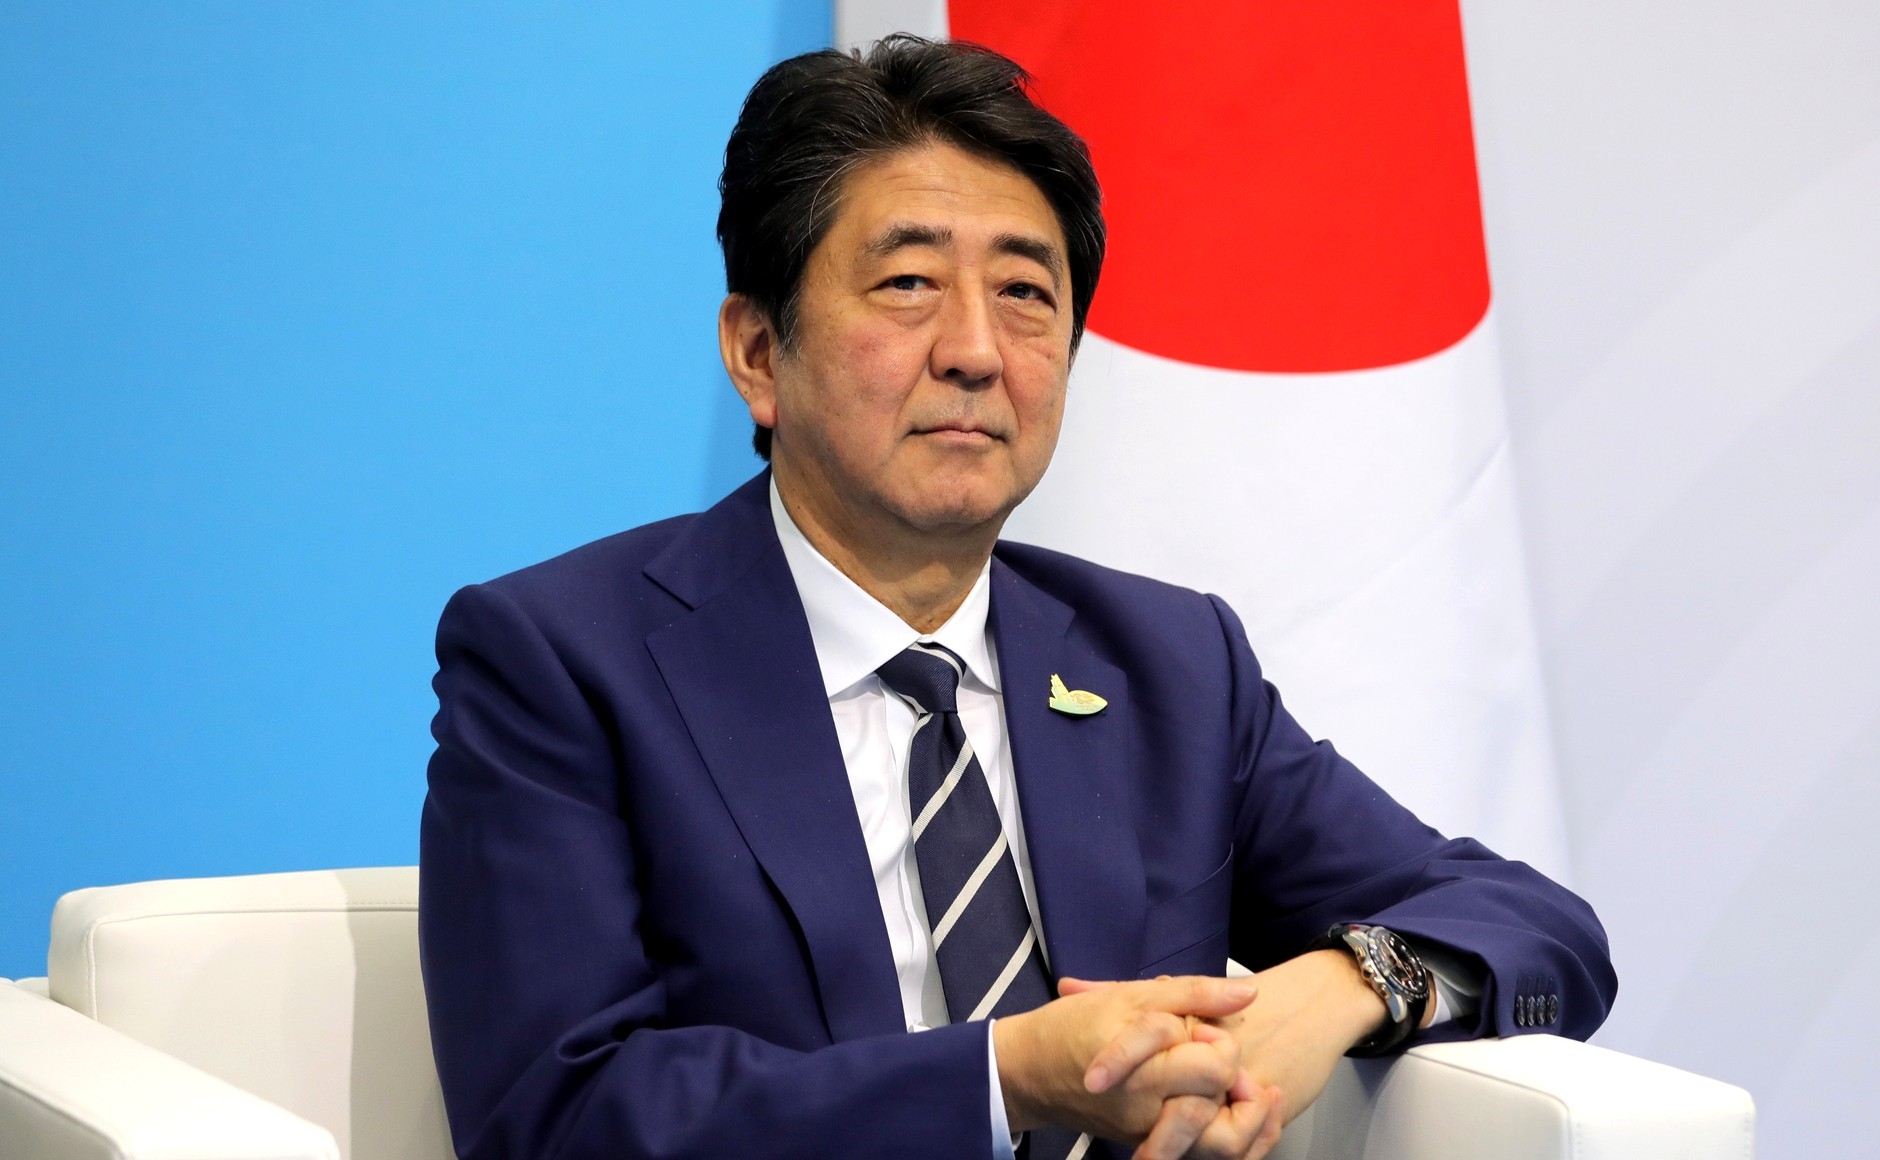 Japanese Prime Minister Shinzo Abe in front of the Japanese flag, earlier in 2017. Abe and the Japanese government are leading a push to provide universal health care to developing countries.